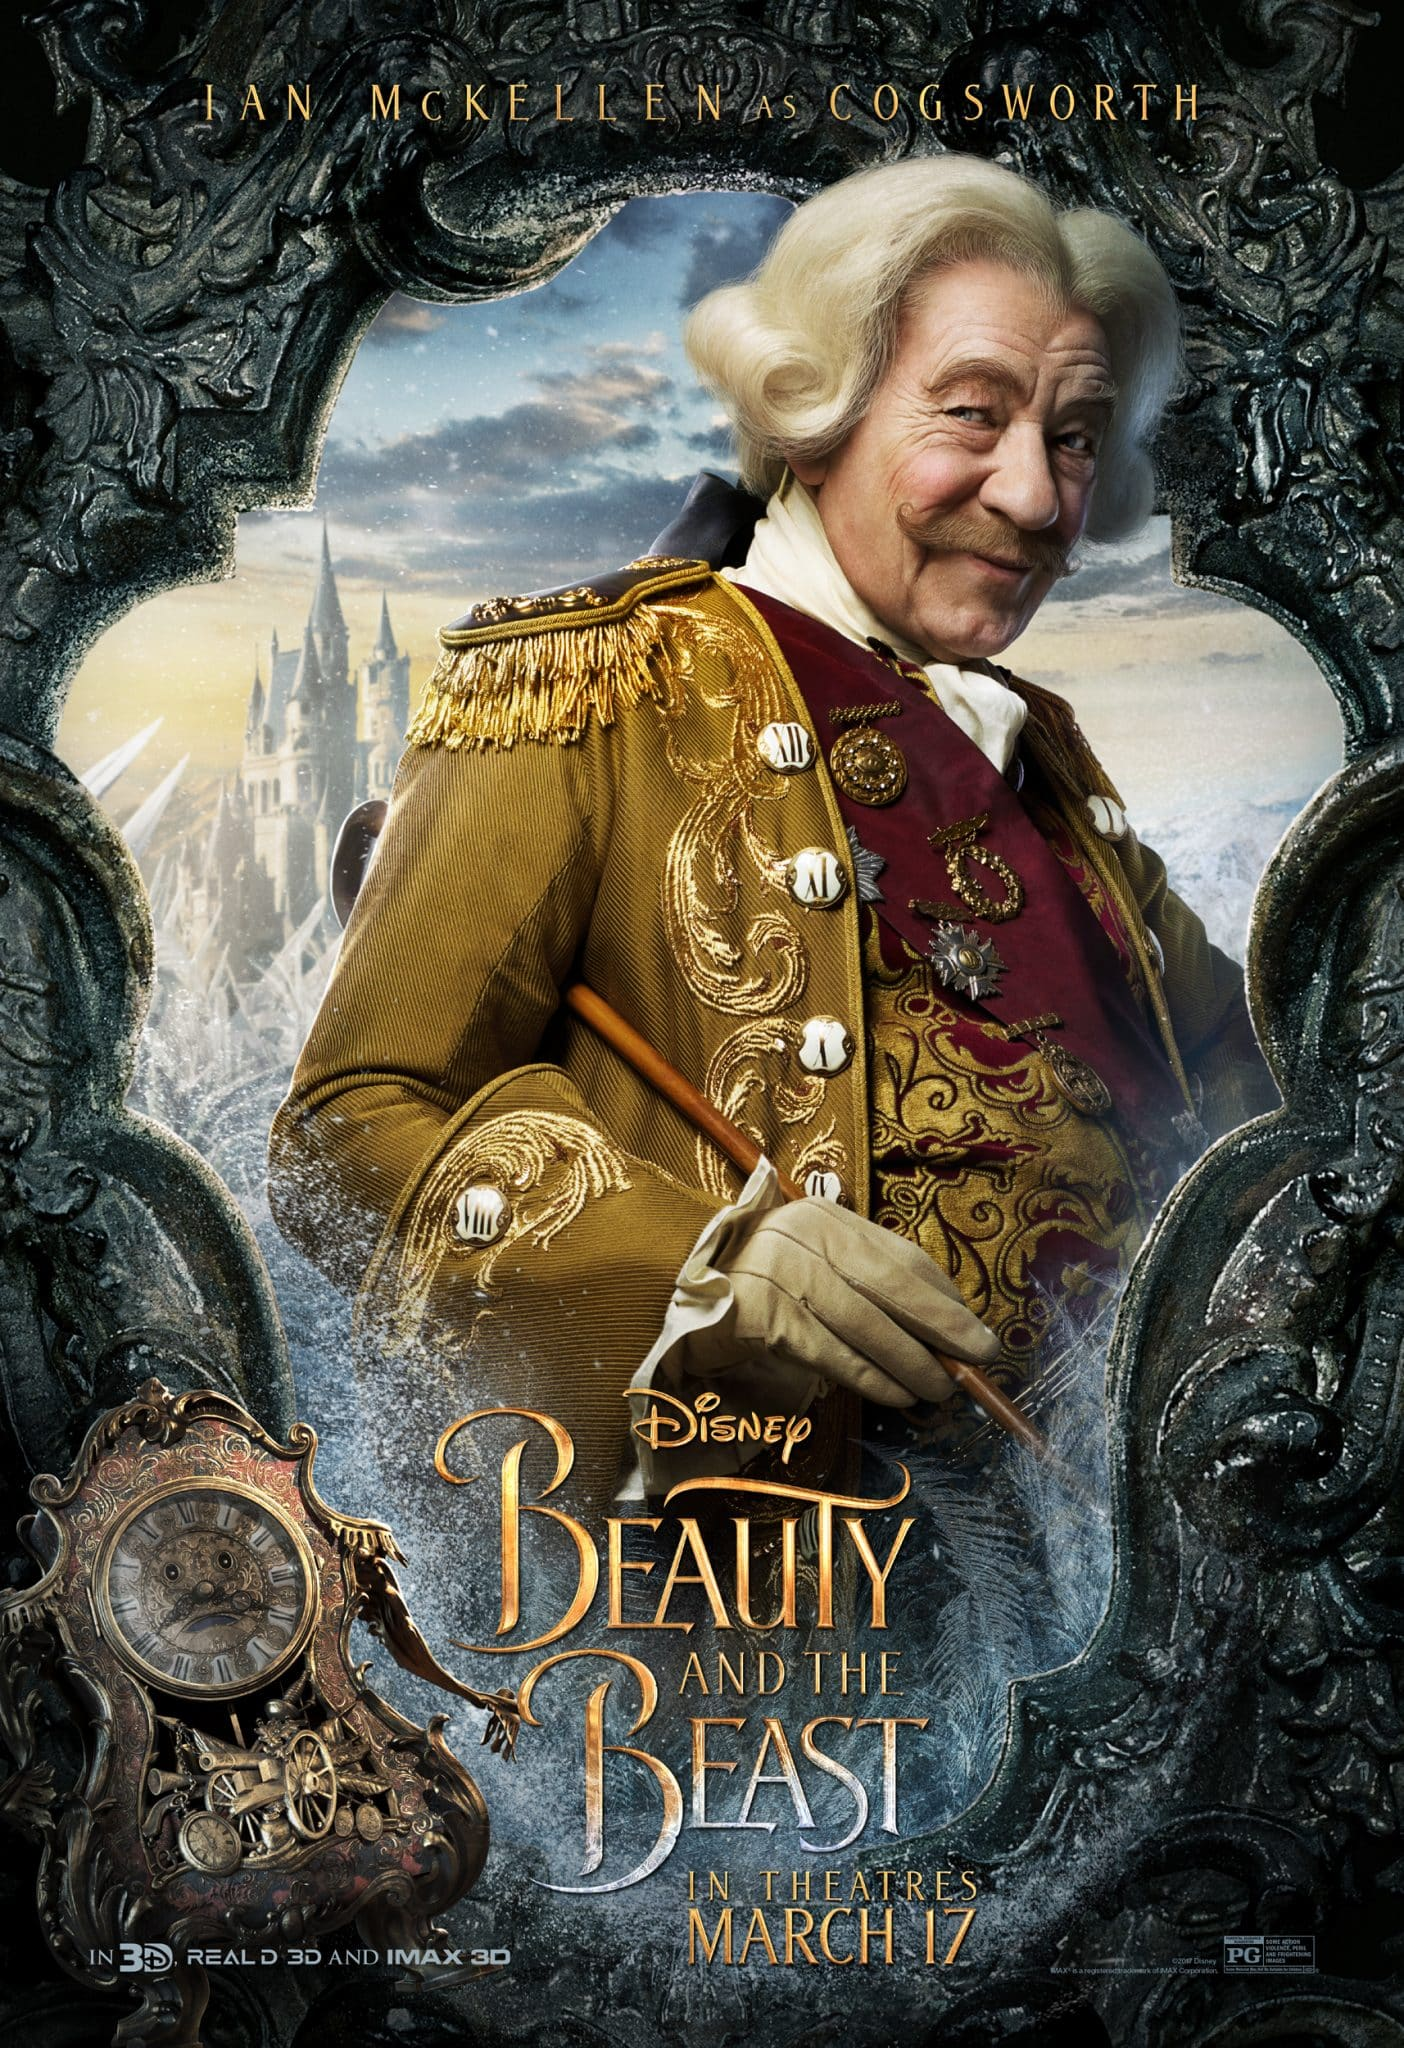 Character Posters for Disney's Beauty And The Beast #BeOurGuest #BeautyAndTheBeast